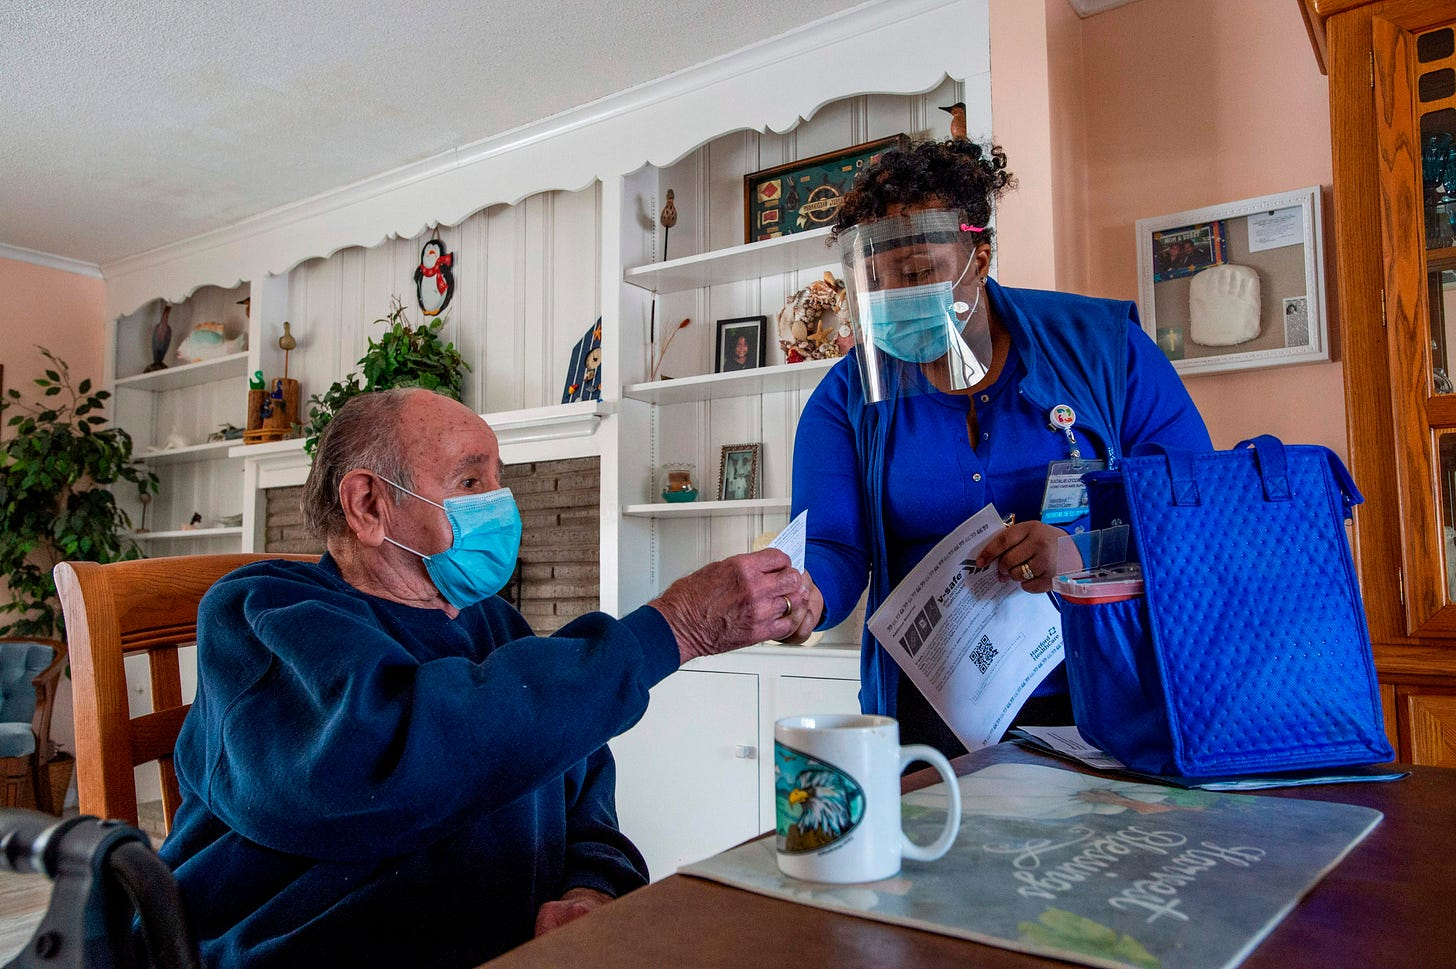 R.N Natalie O'Connor hands a vaccine card to Stanley Mowel (L) before vaccinating him at his home in Manchester, Connecticut on February 12, 2021